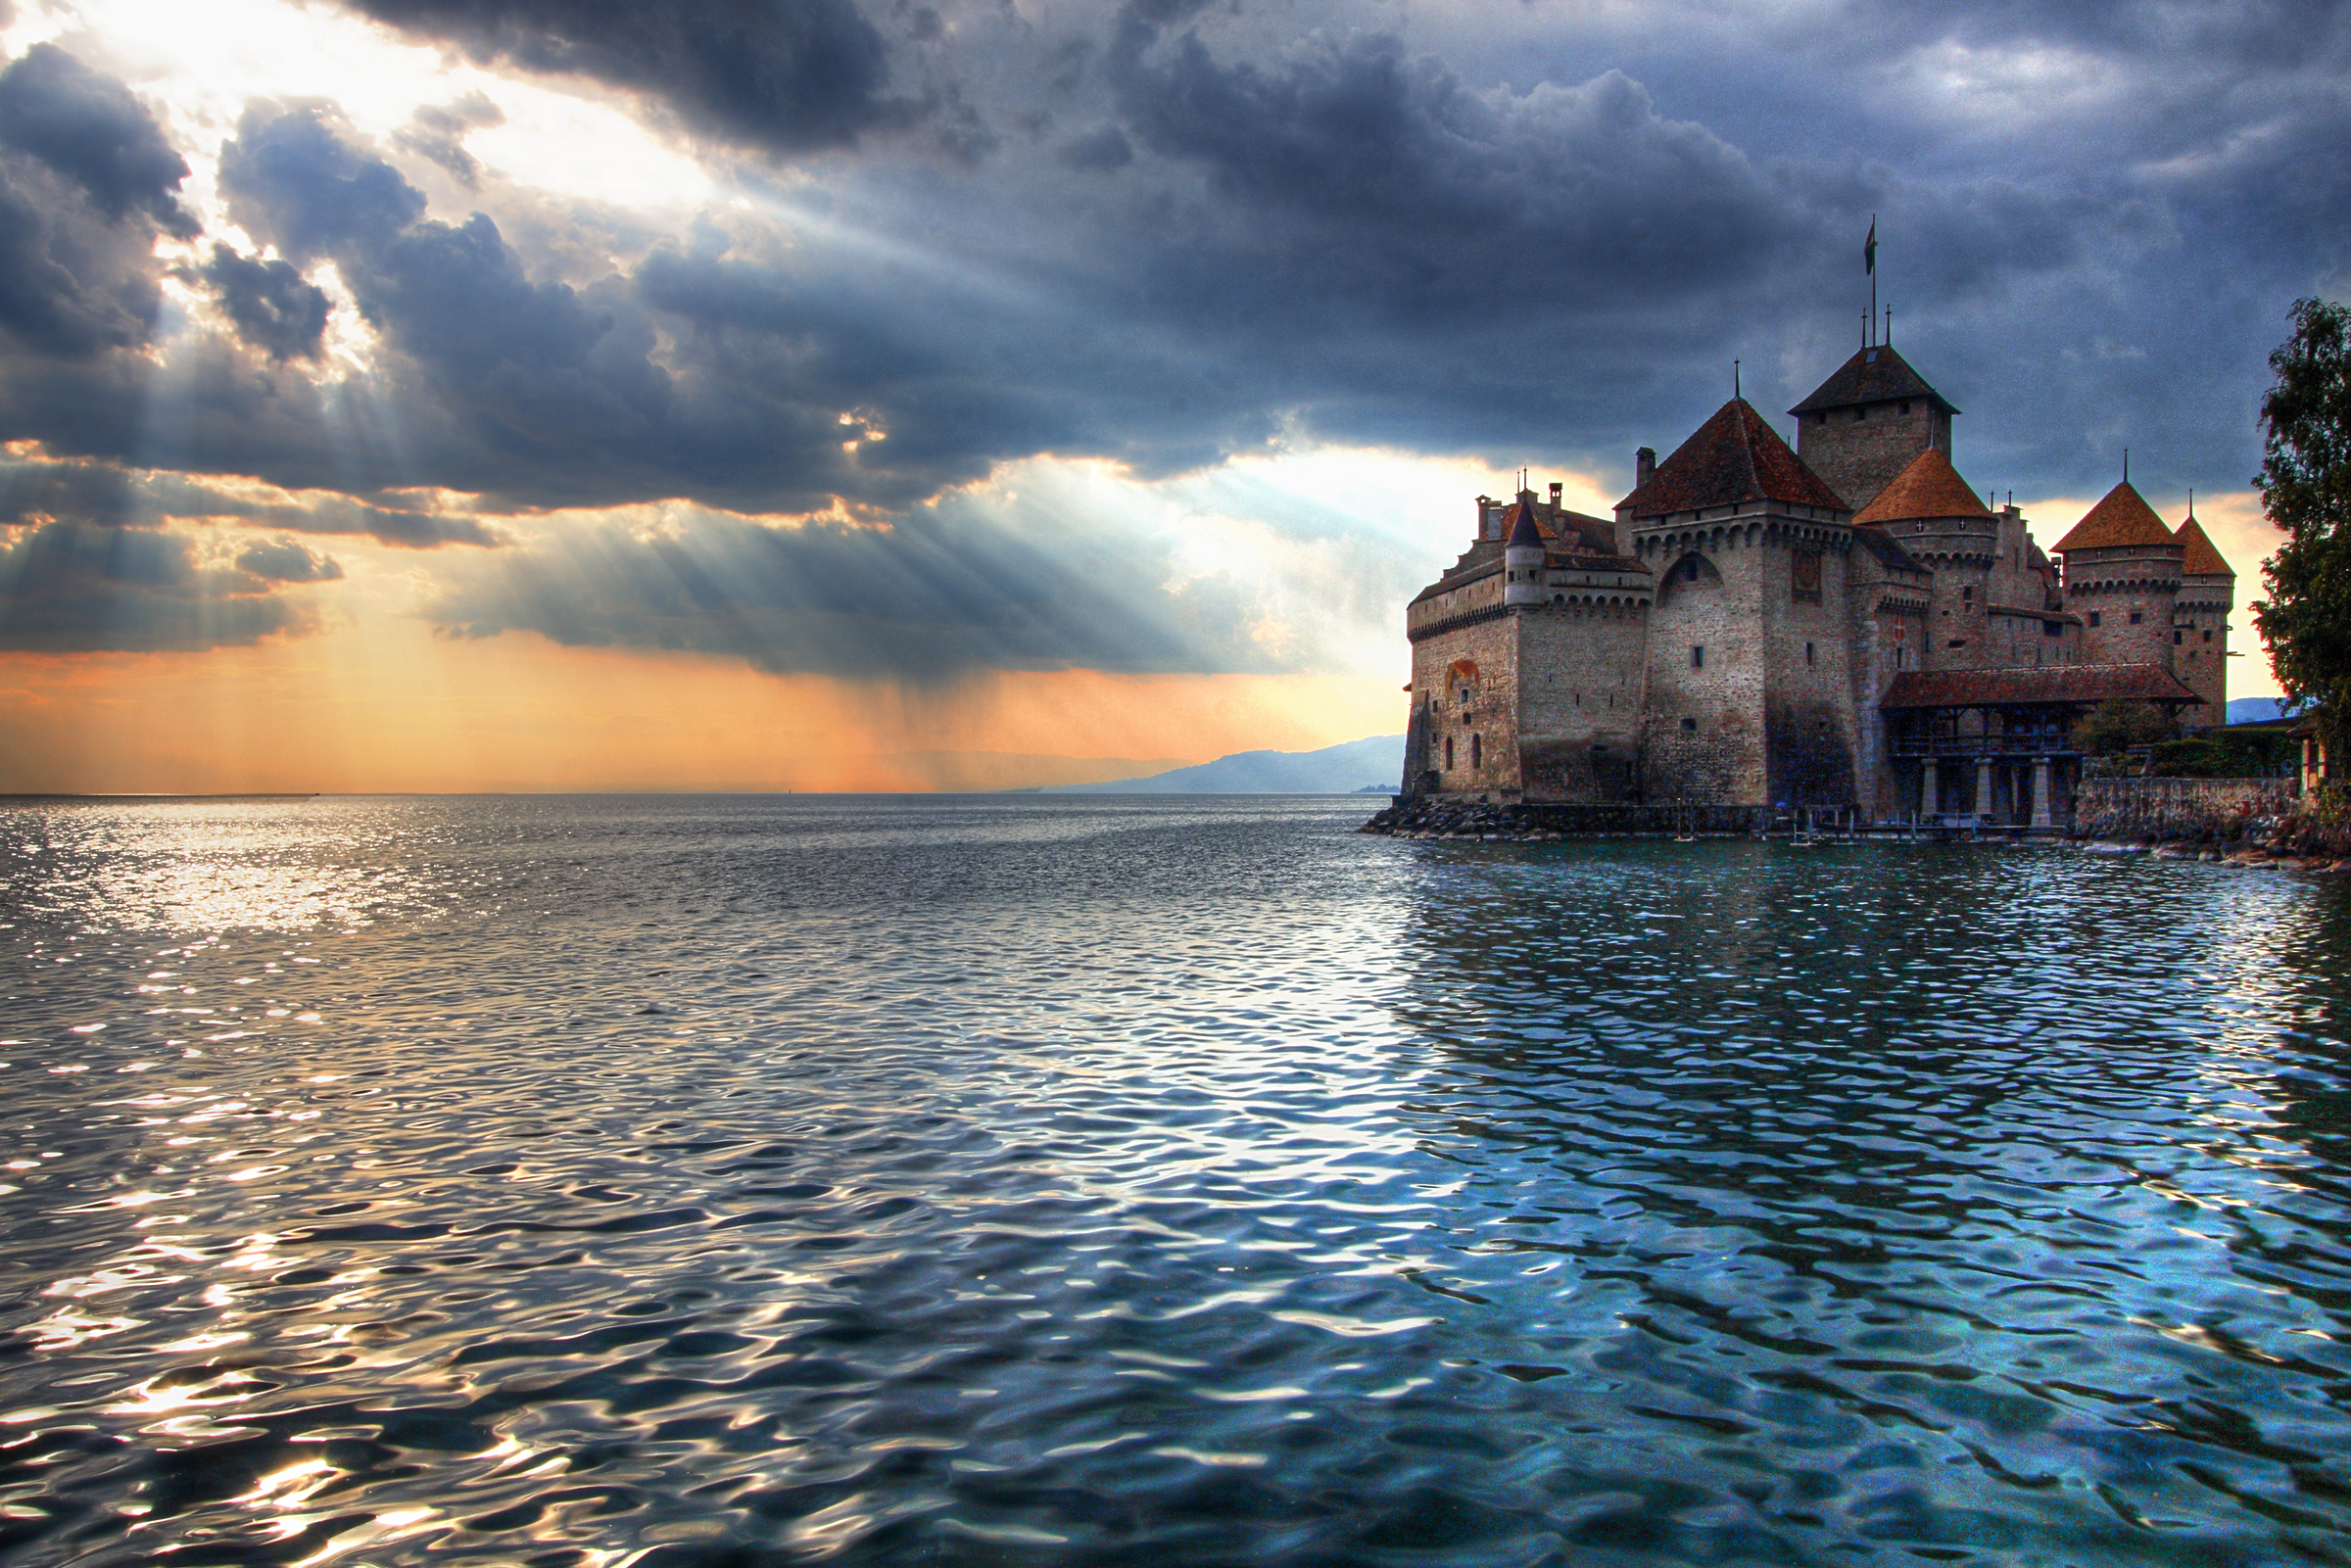 Creative Commons: https://ca.wikipedia.org/wiki/Fitxer:The_Sun_Sets_on_Ch%C3%A2teau_de_Chillon.jpg